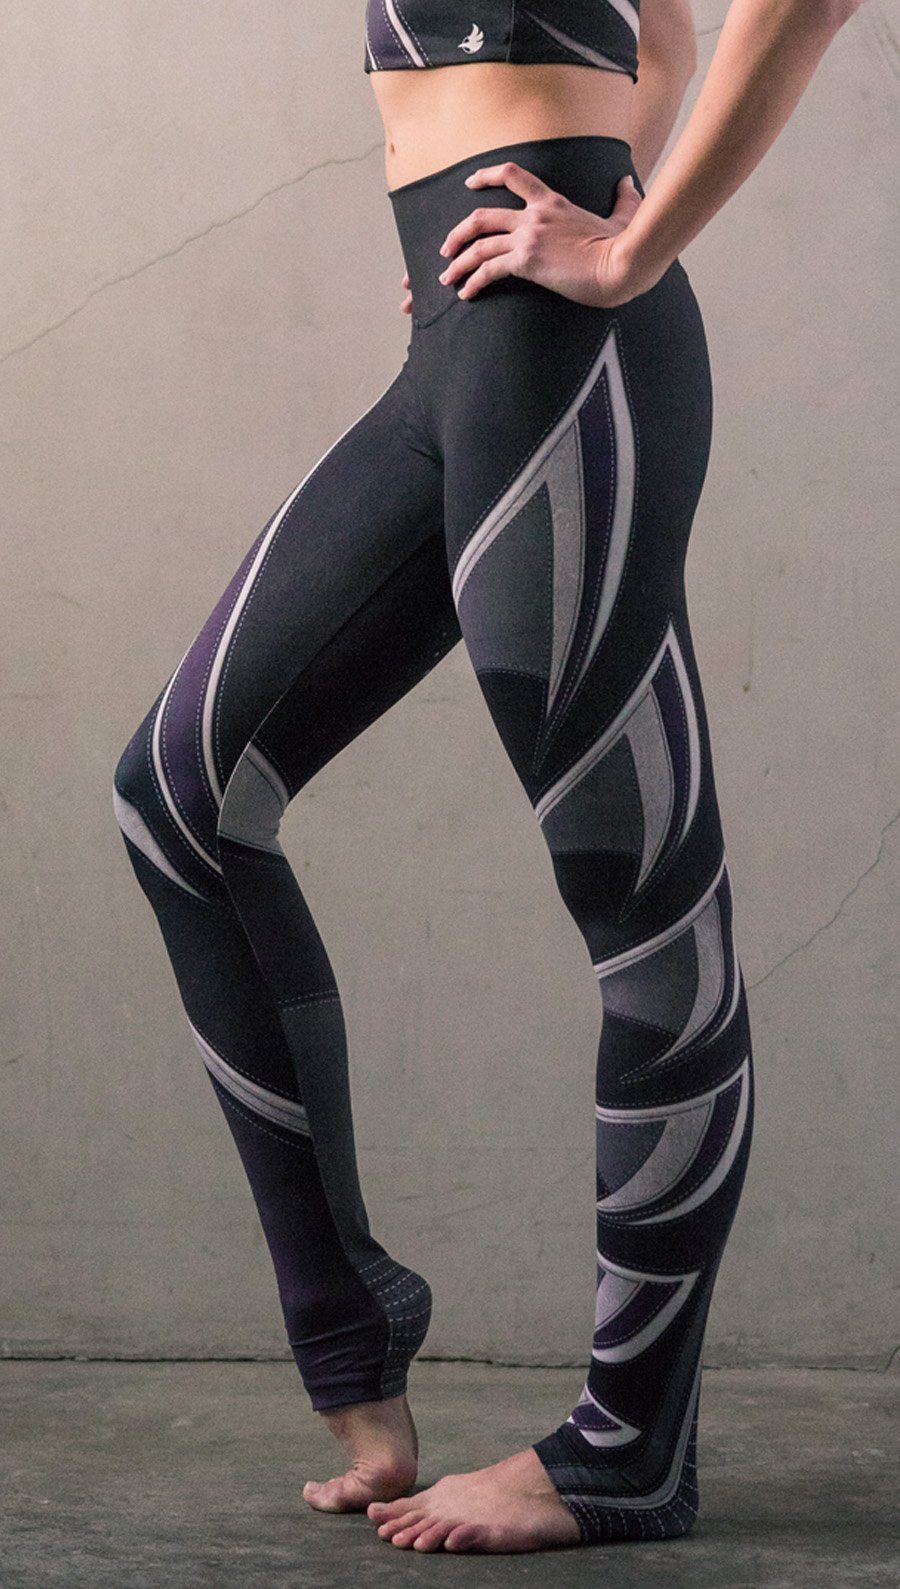 033e7f3c6a579 Left side view of model wearing black printed full-length leggings with  purple and gray